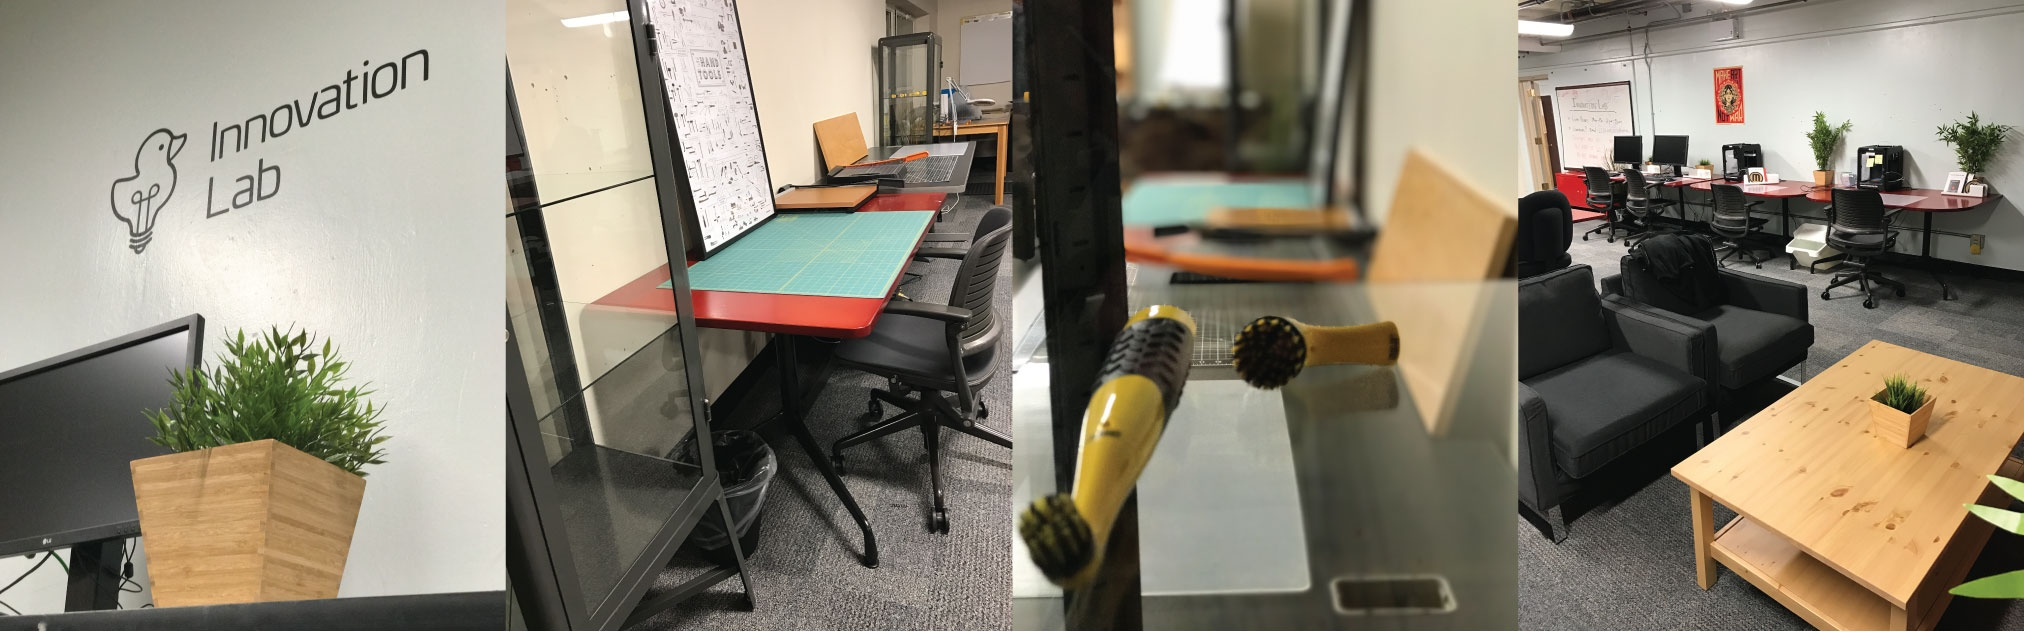 Collage of photos of the Innovation Lab space